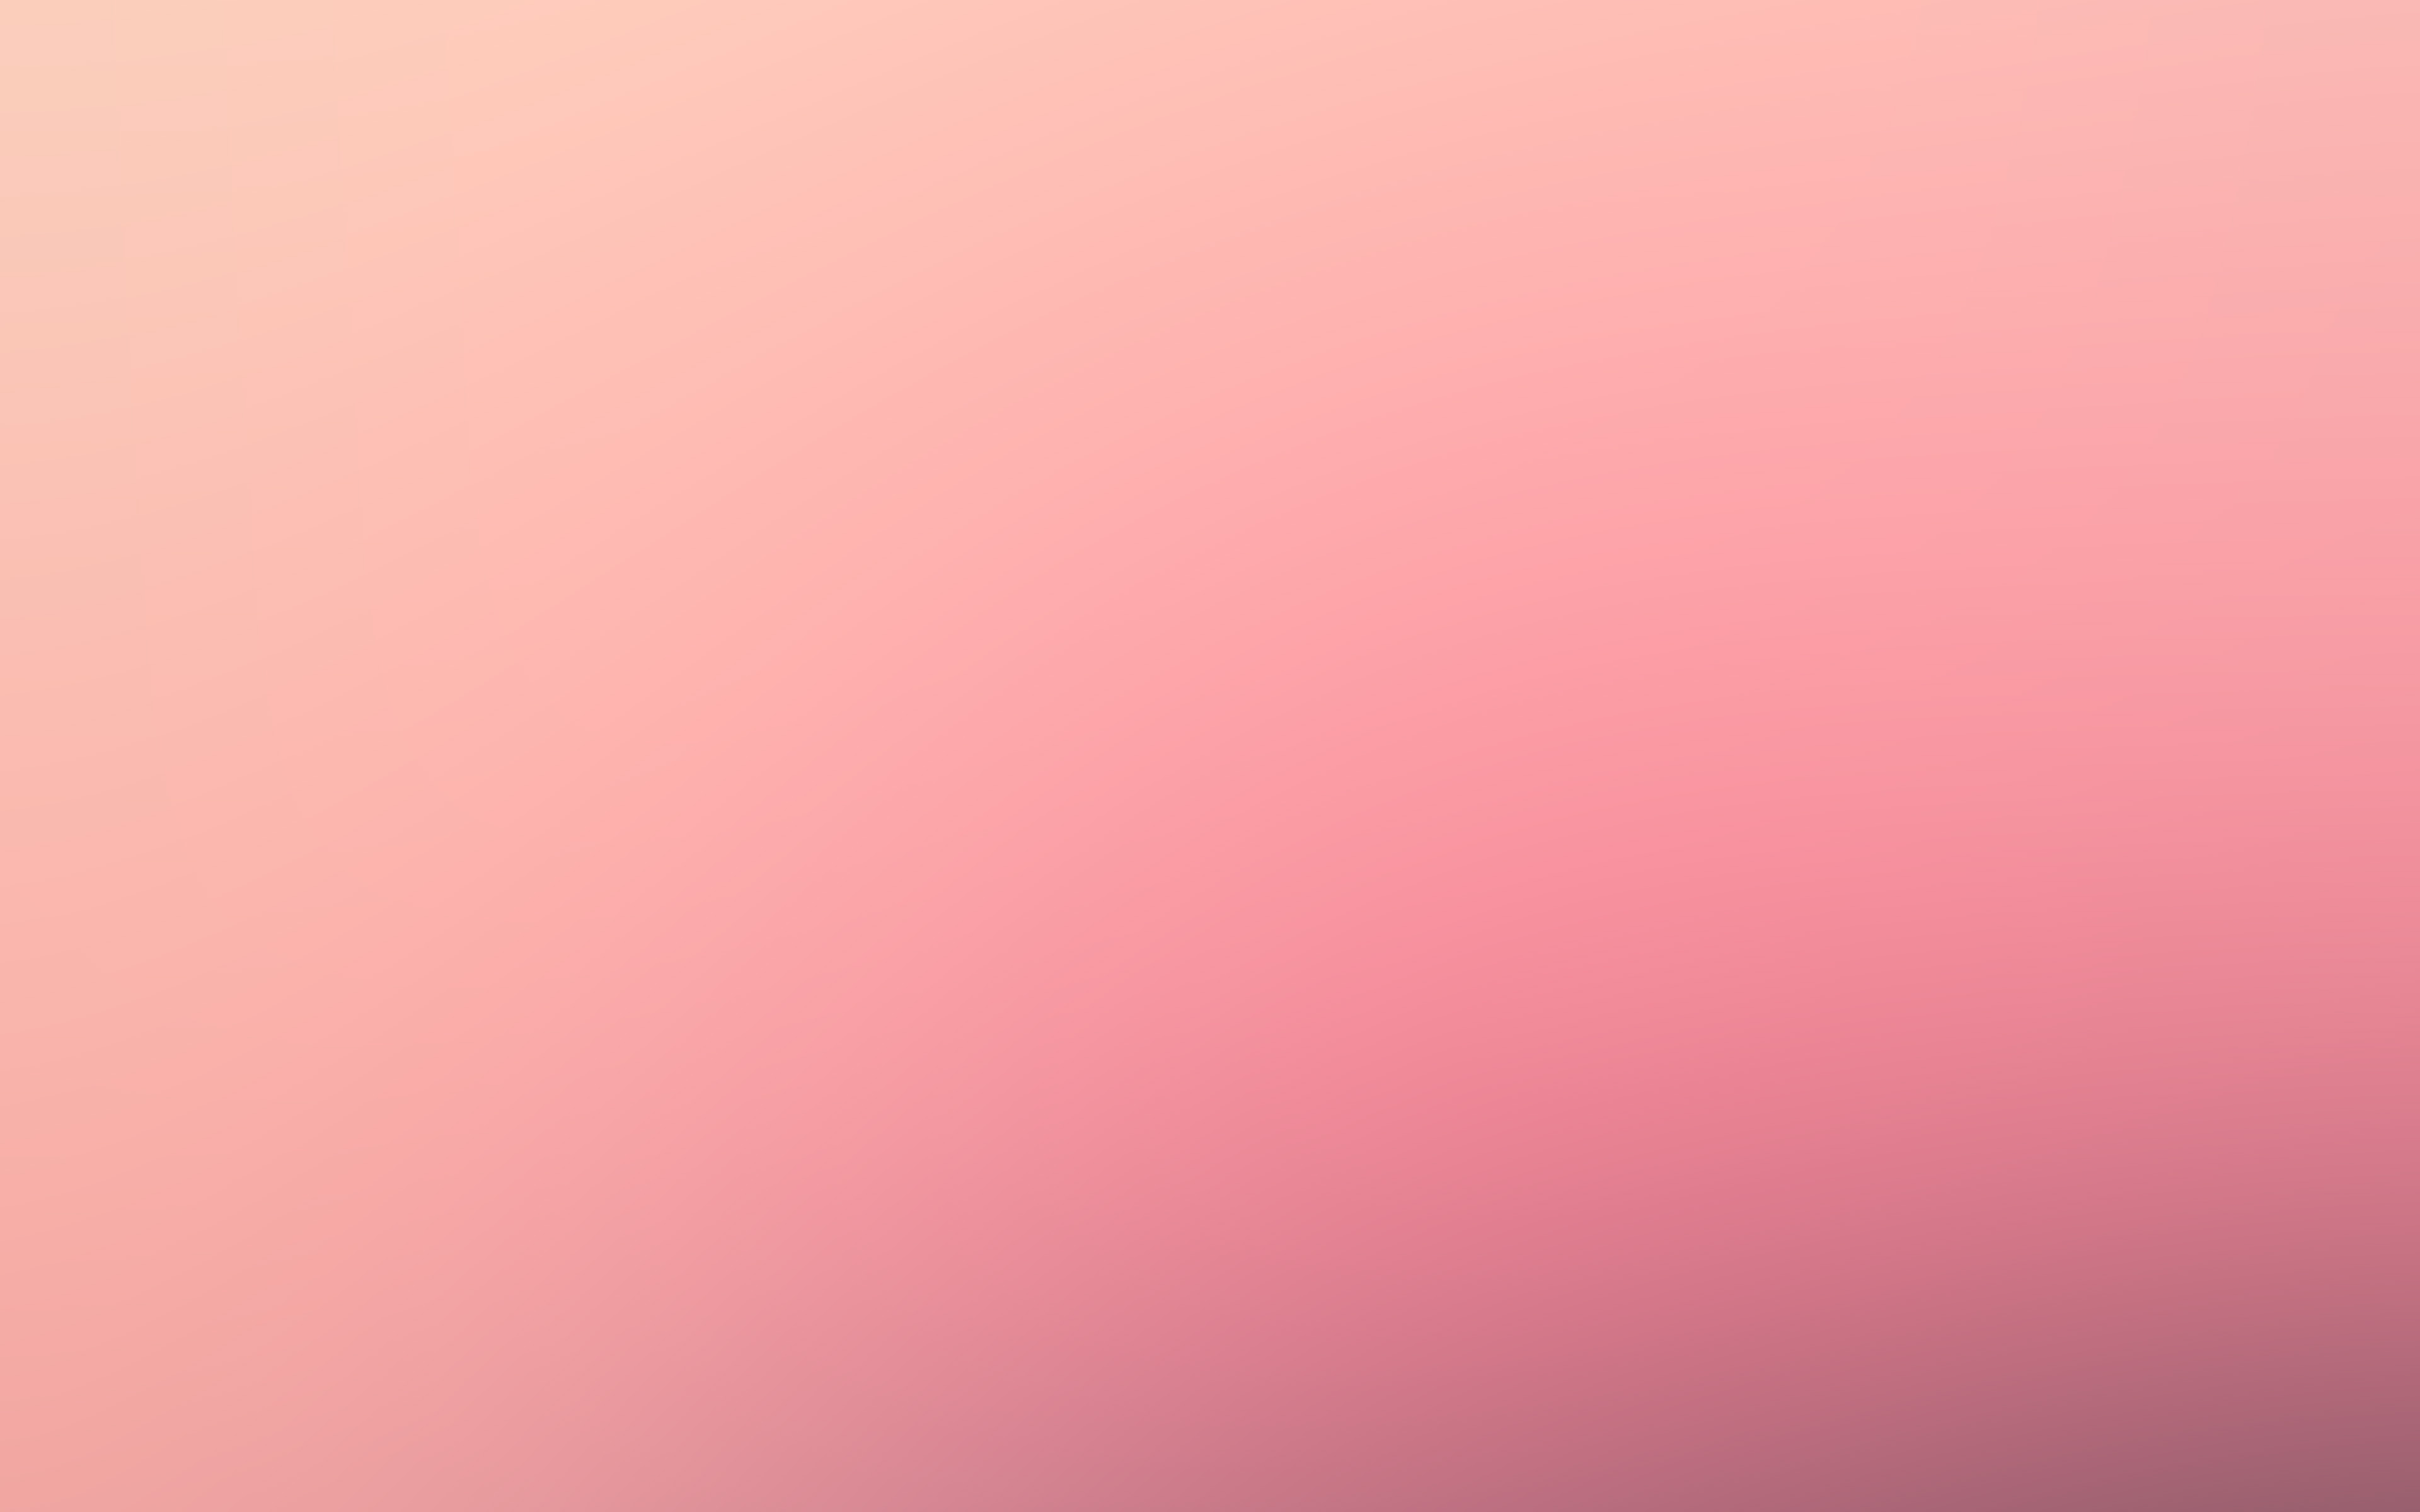 Fall Wallpapers In Pink Color Sg71 Orange Pink Rosegold Soft Night Gradation Blur